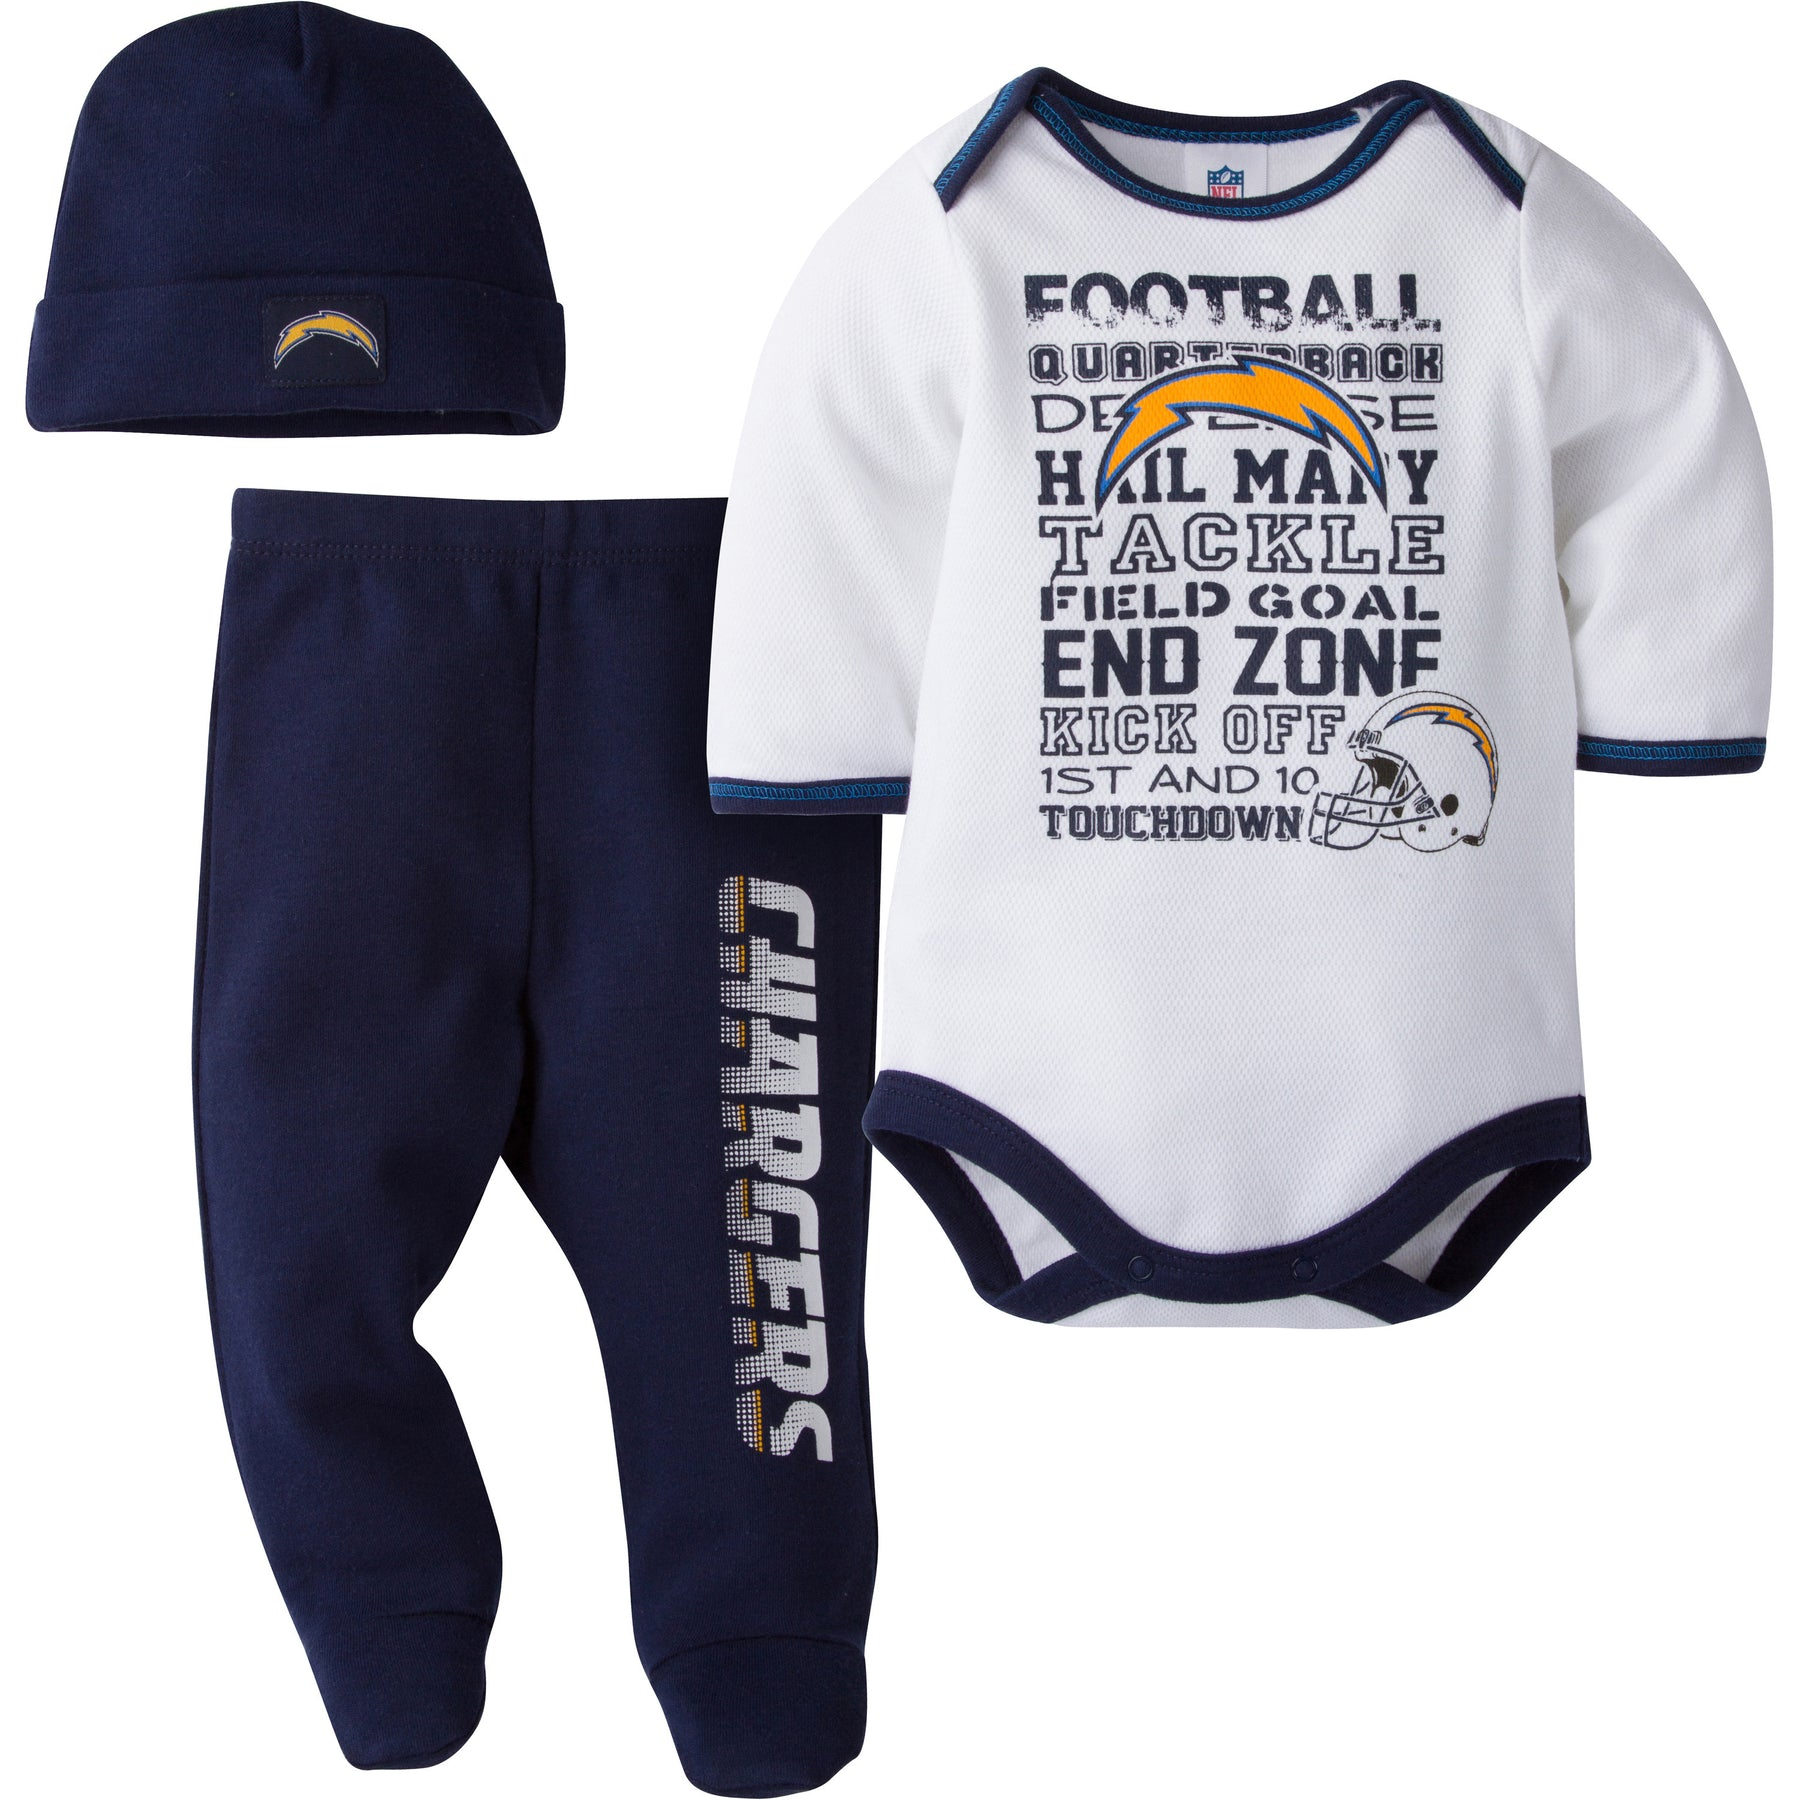 446c9190 Chargers Baby 3 Piece Outfit